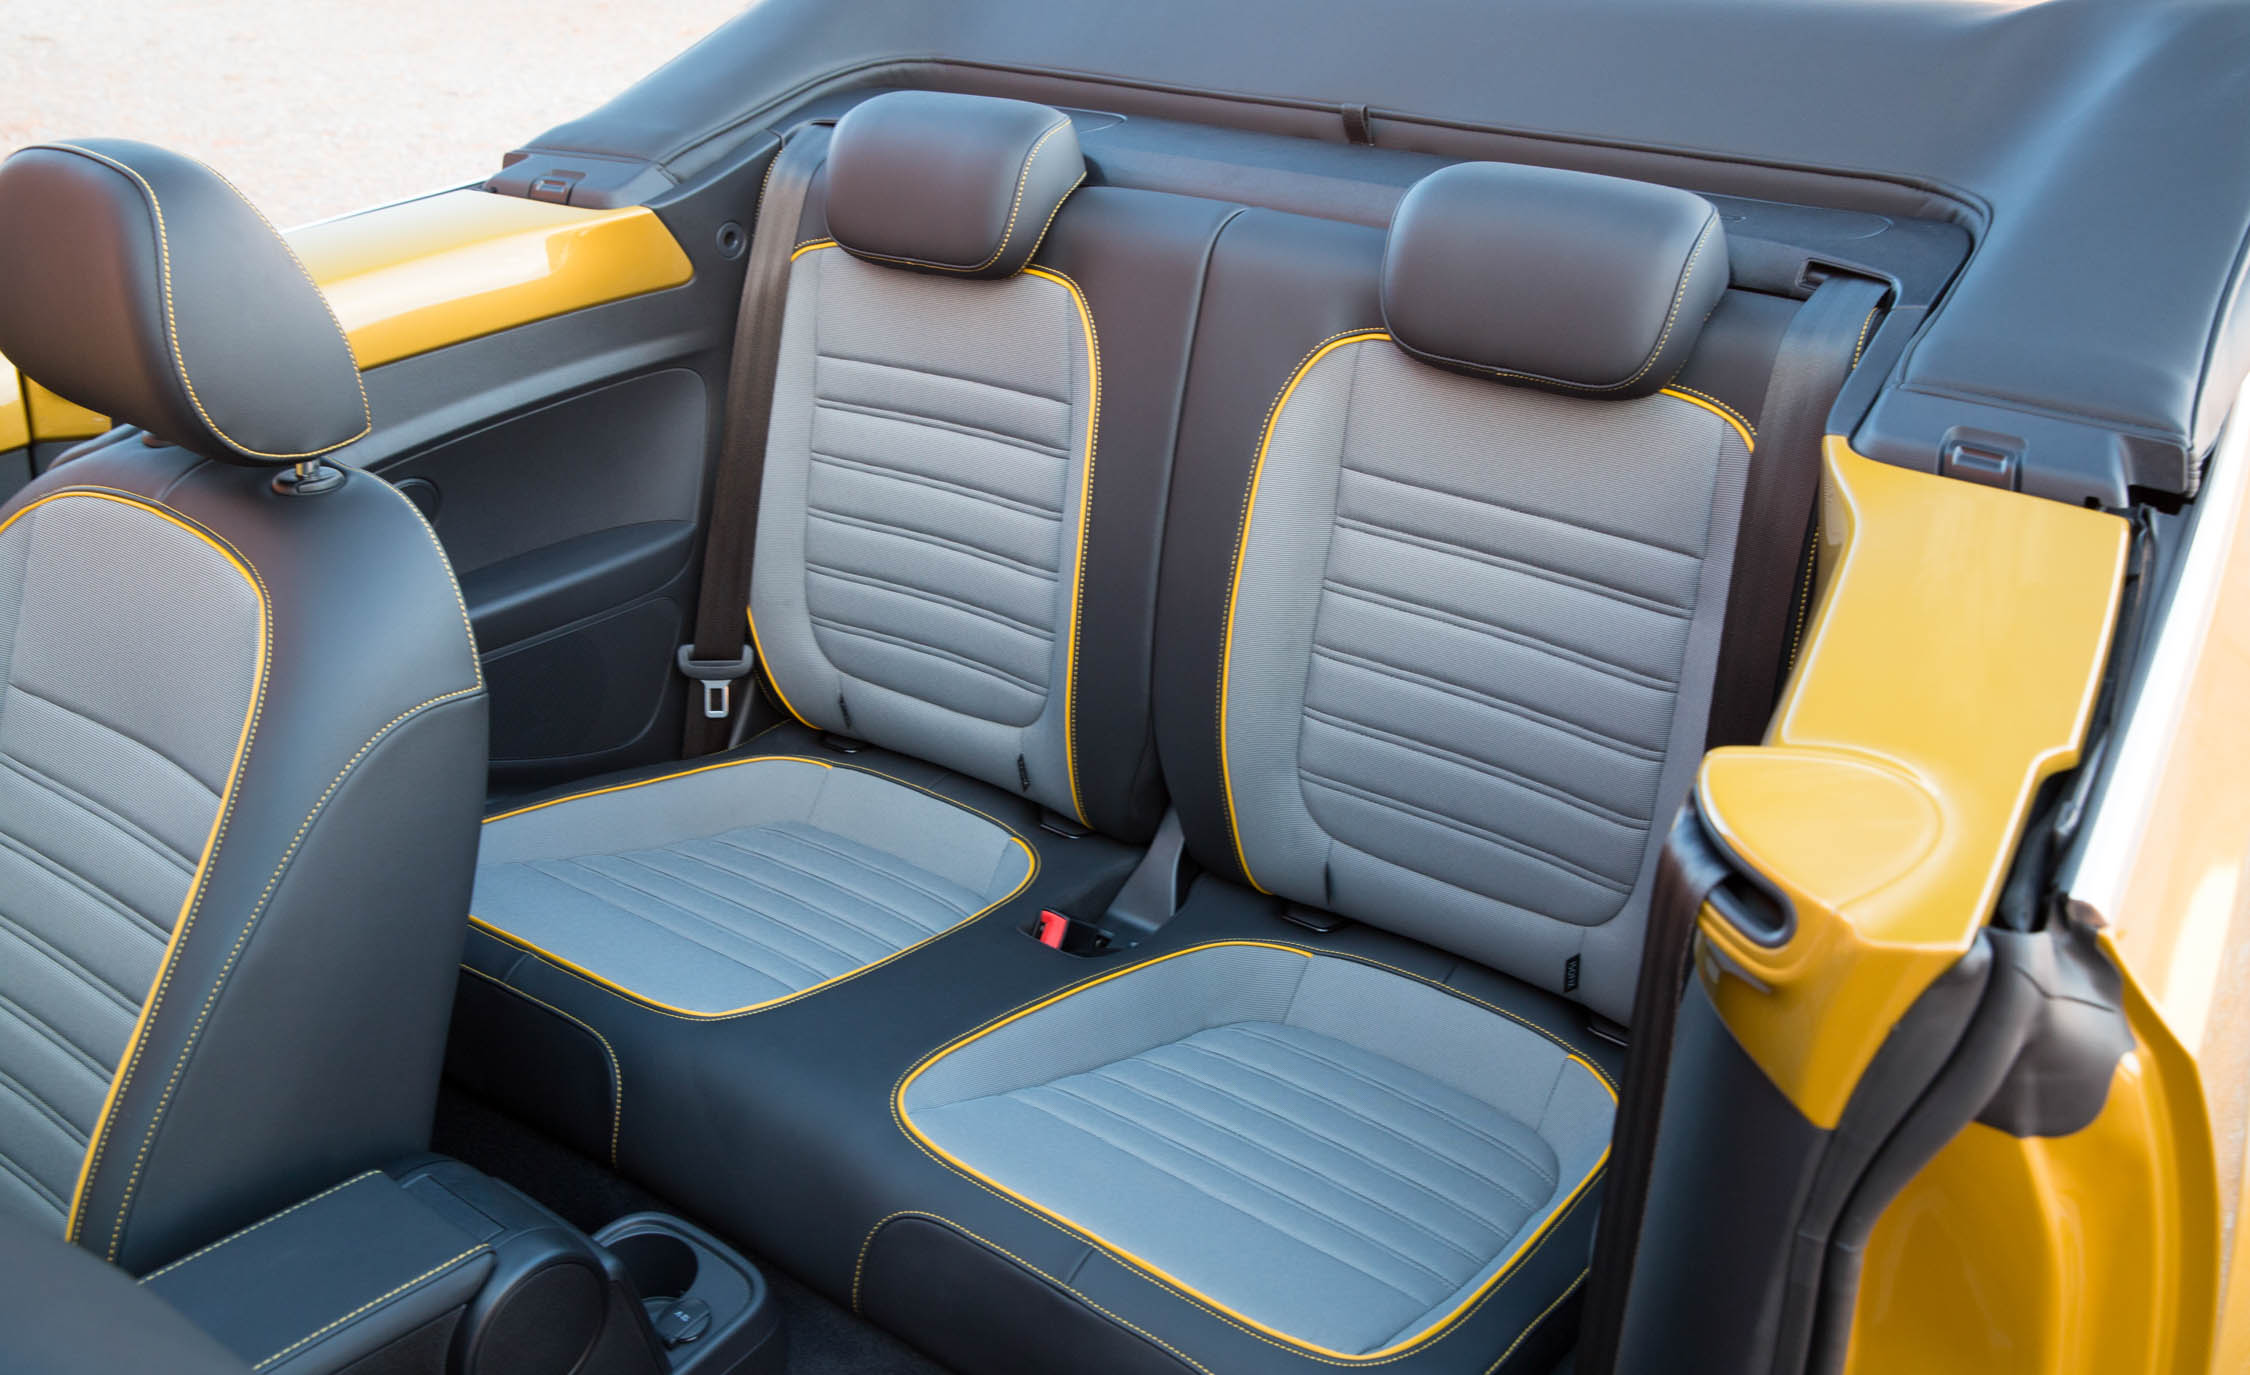 2016 Volkswagen Beetle Dune Interior Rear Seats